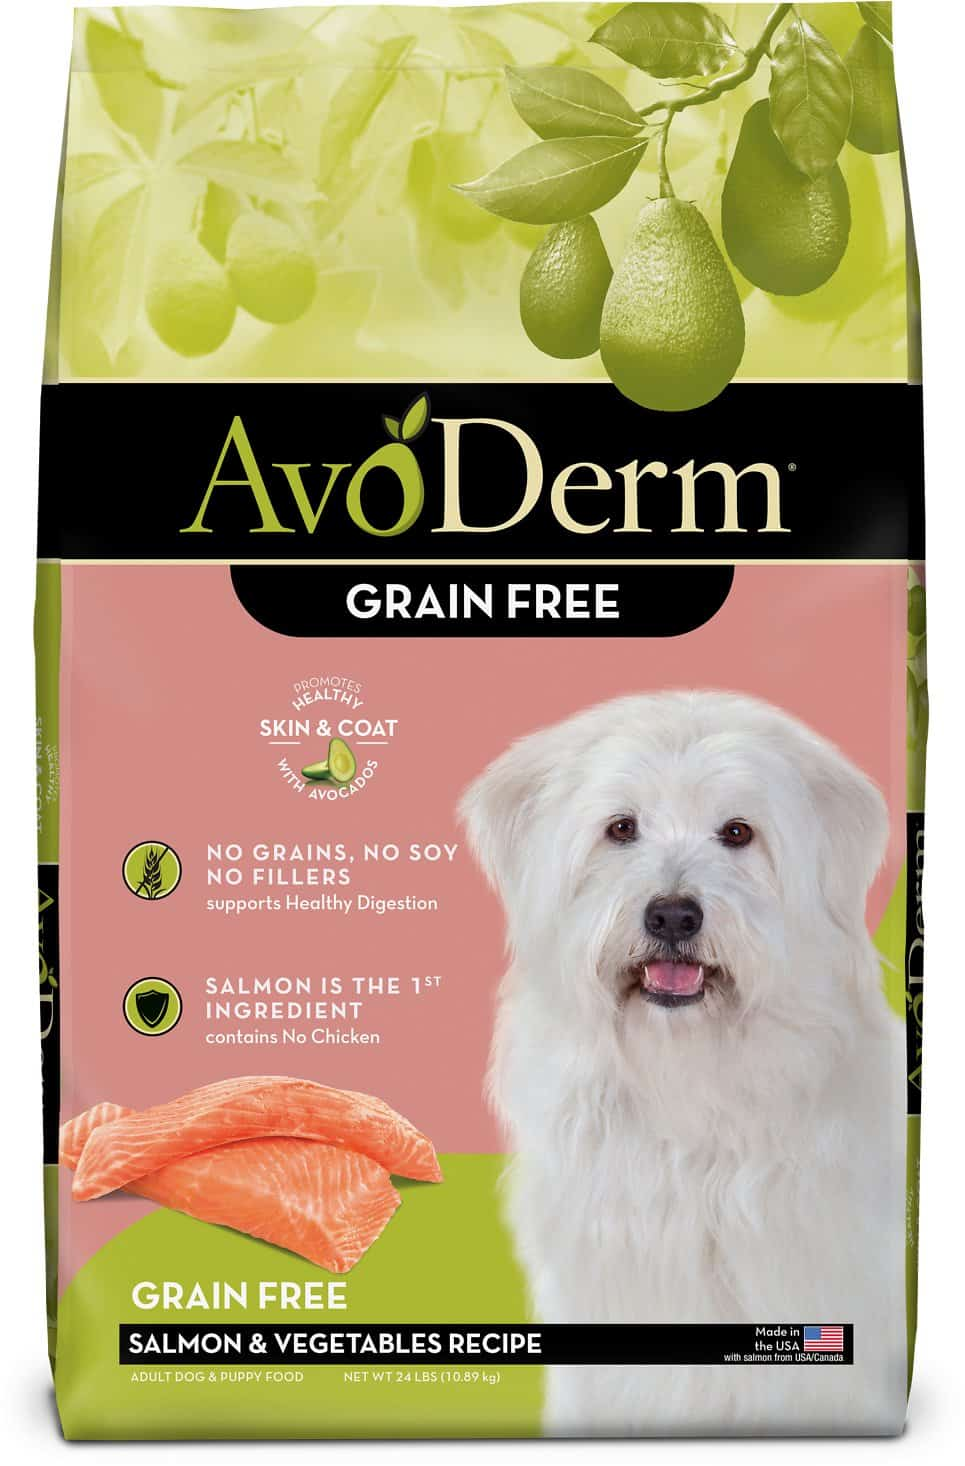 Avoderm Dog Food Review 2021: Is Avocado Best for Dogs? 15